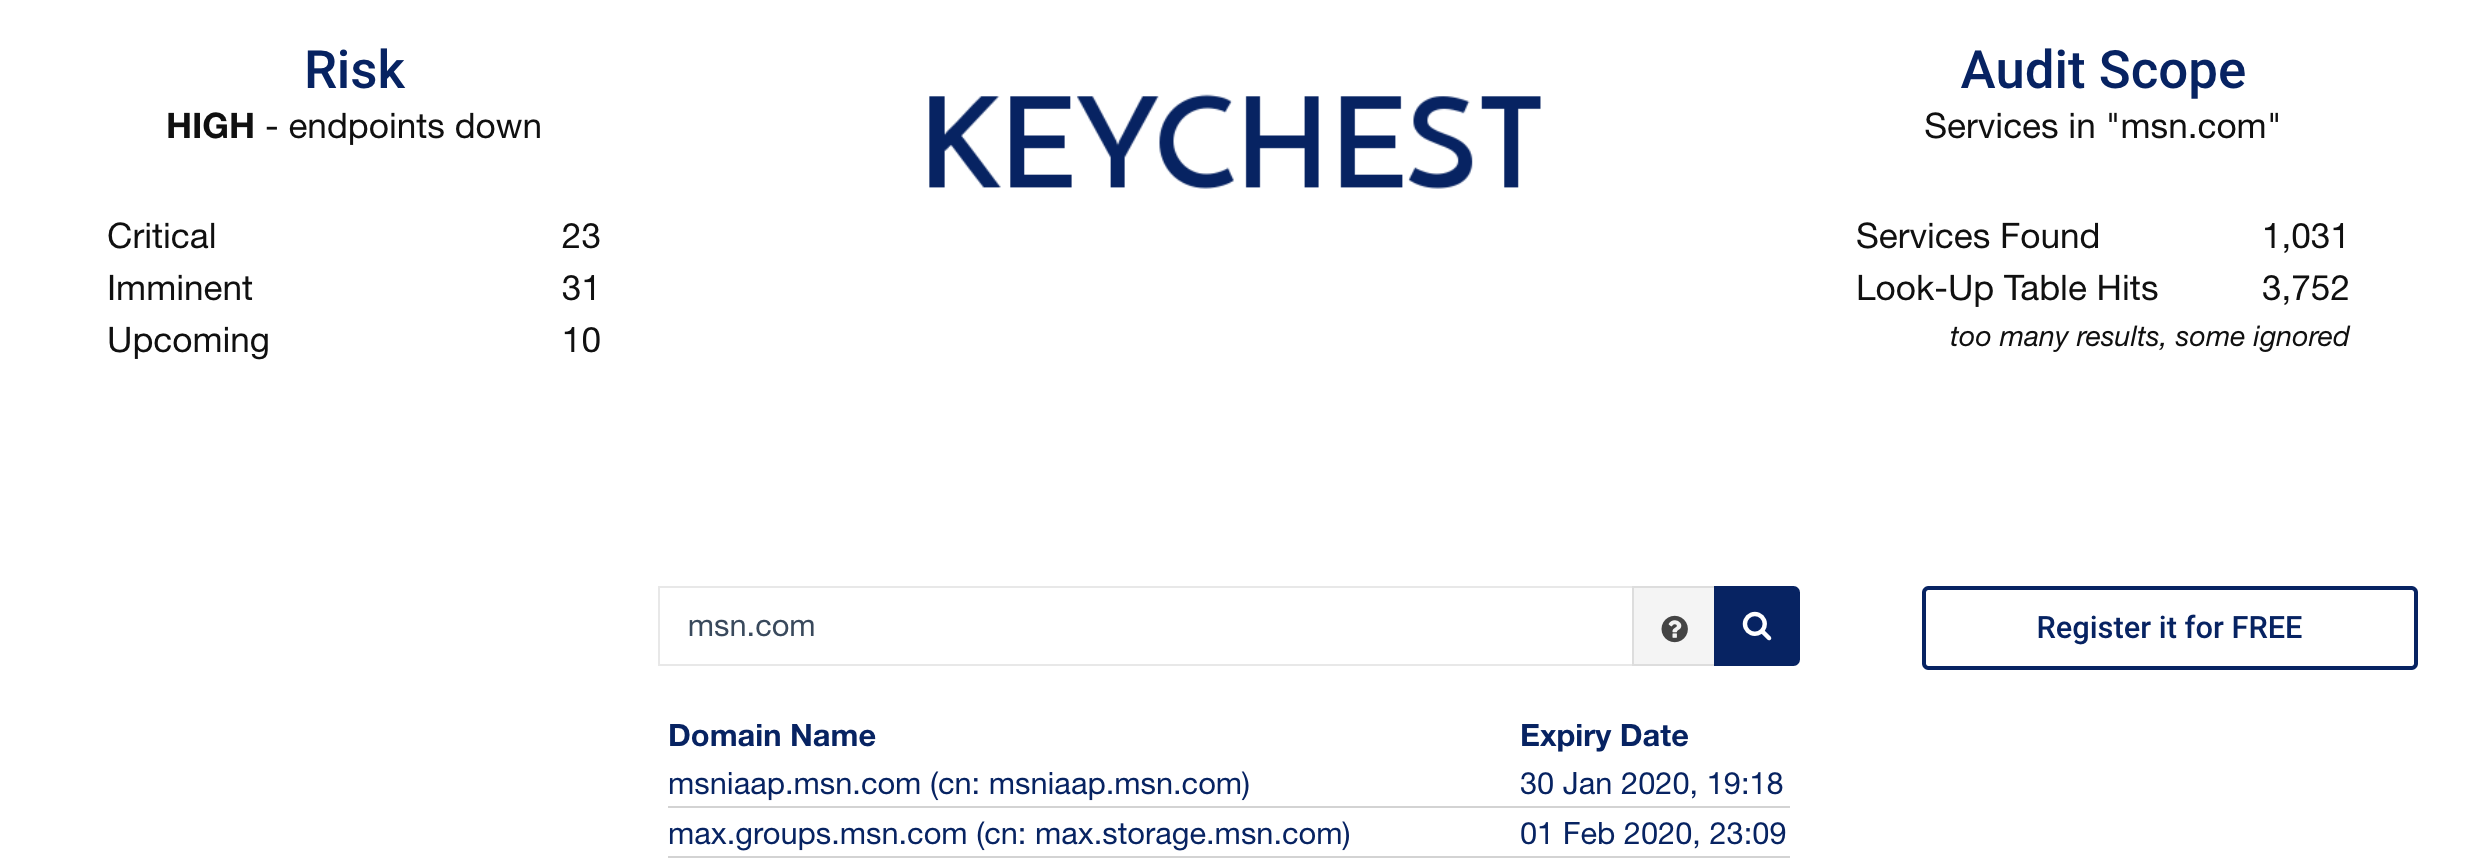 msn.com is one of many domains owned by Microsoft, and it's mentioned in the DNS hijacking context.